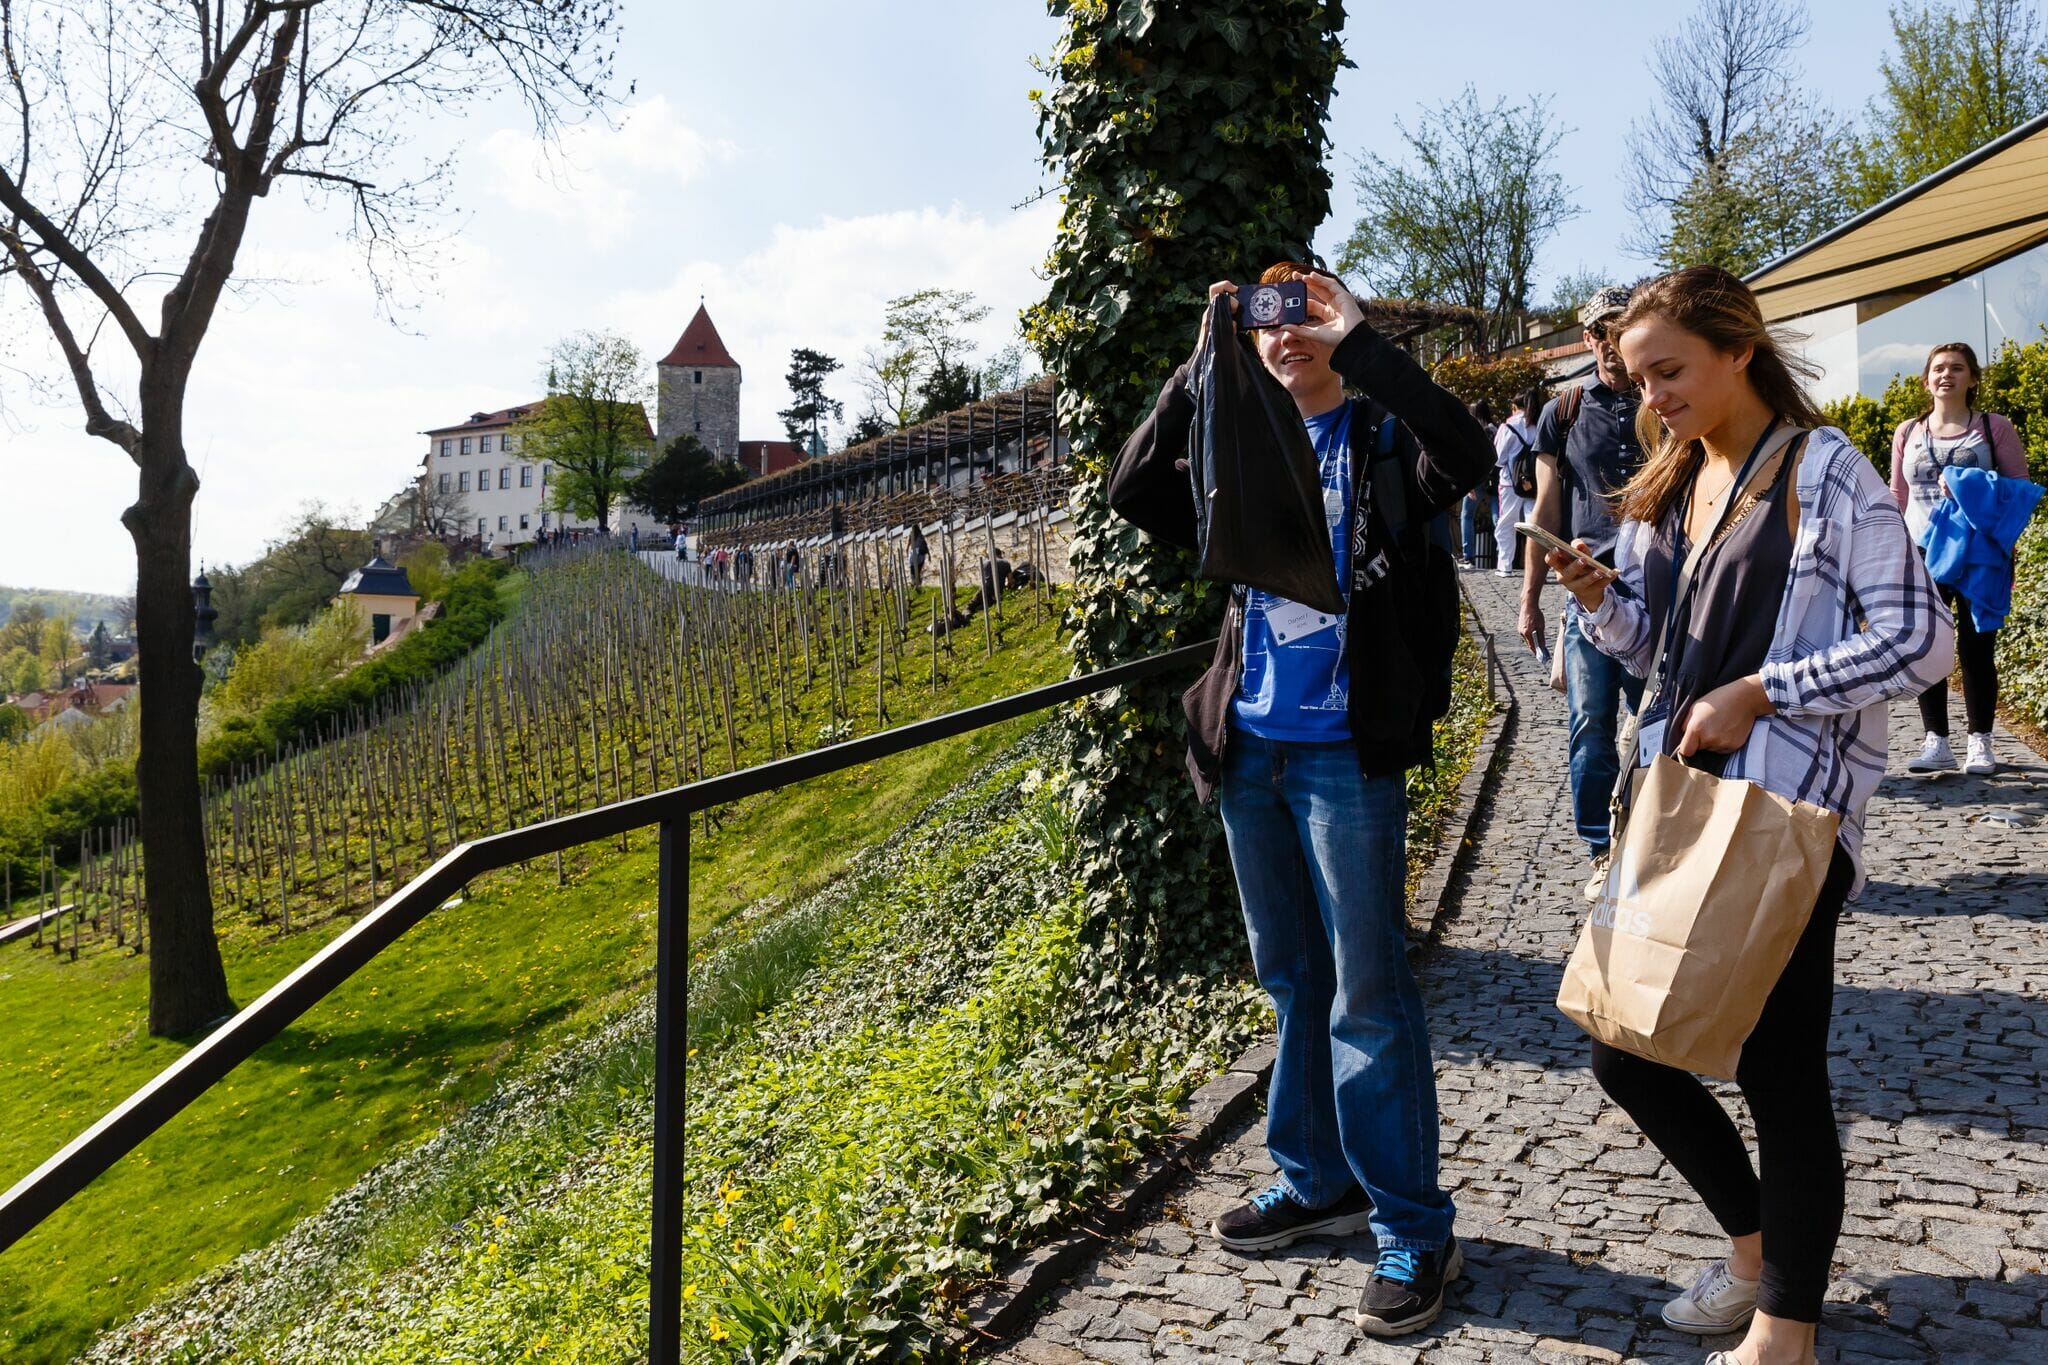 Students on educational tour in Prague